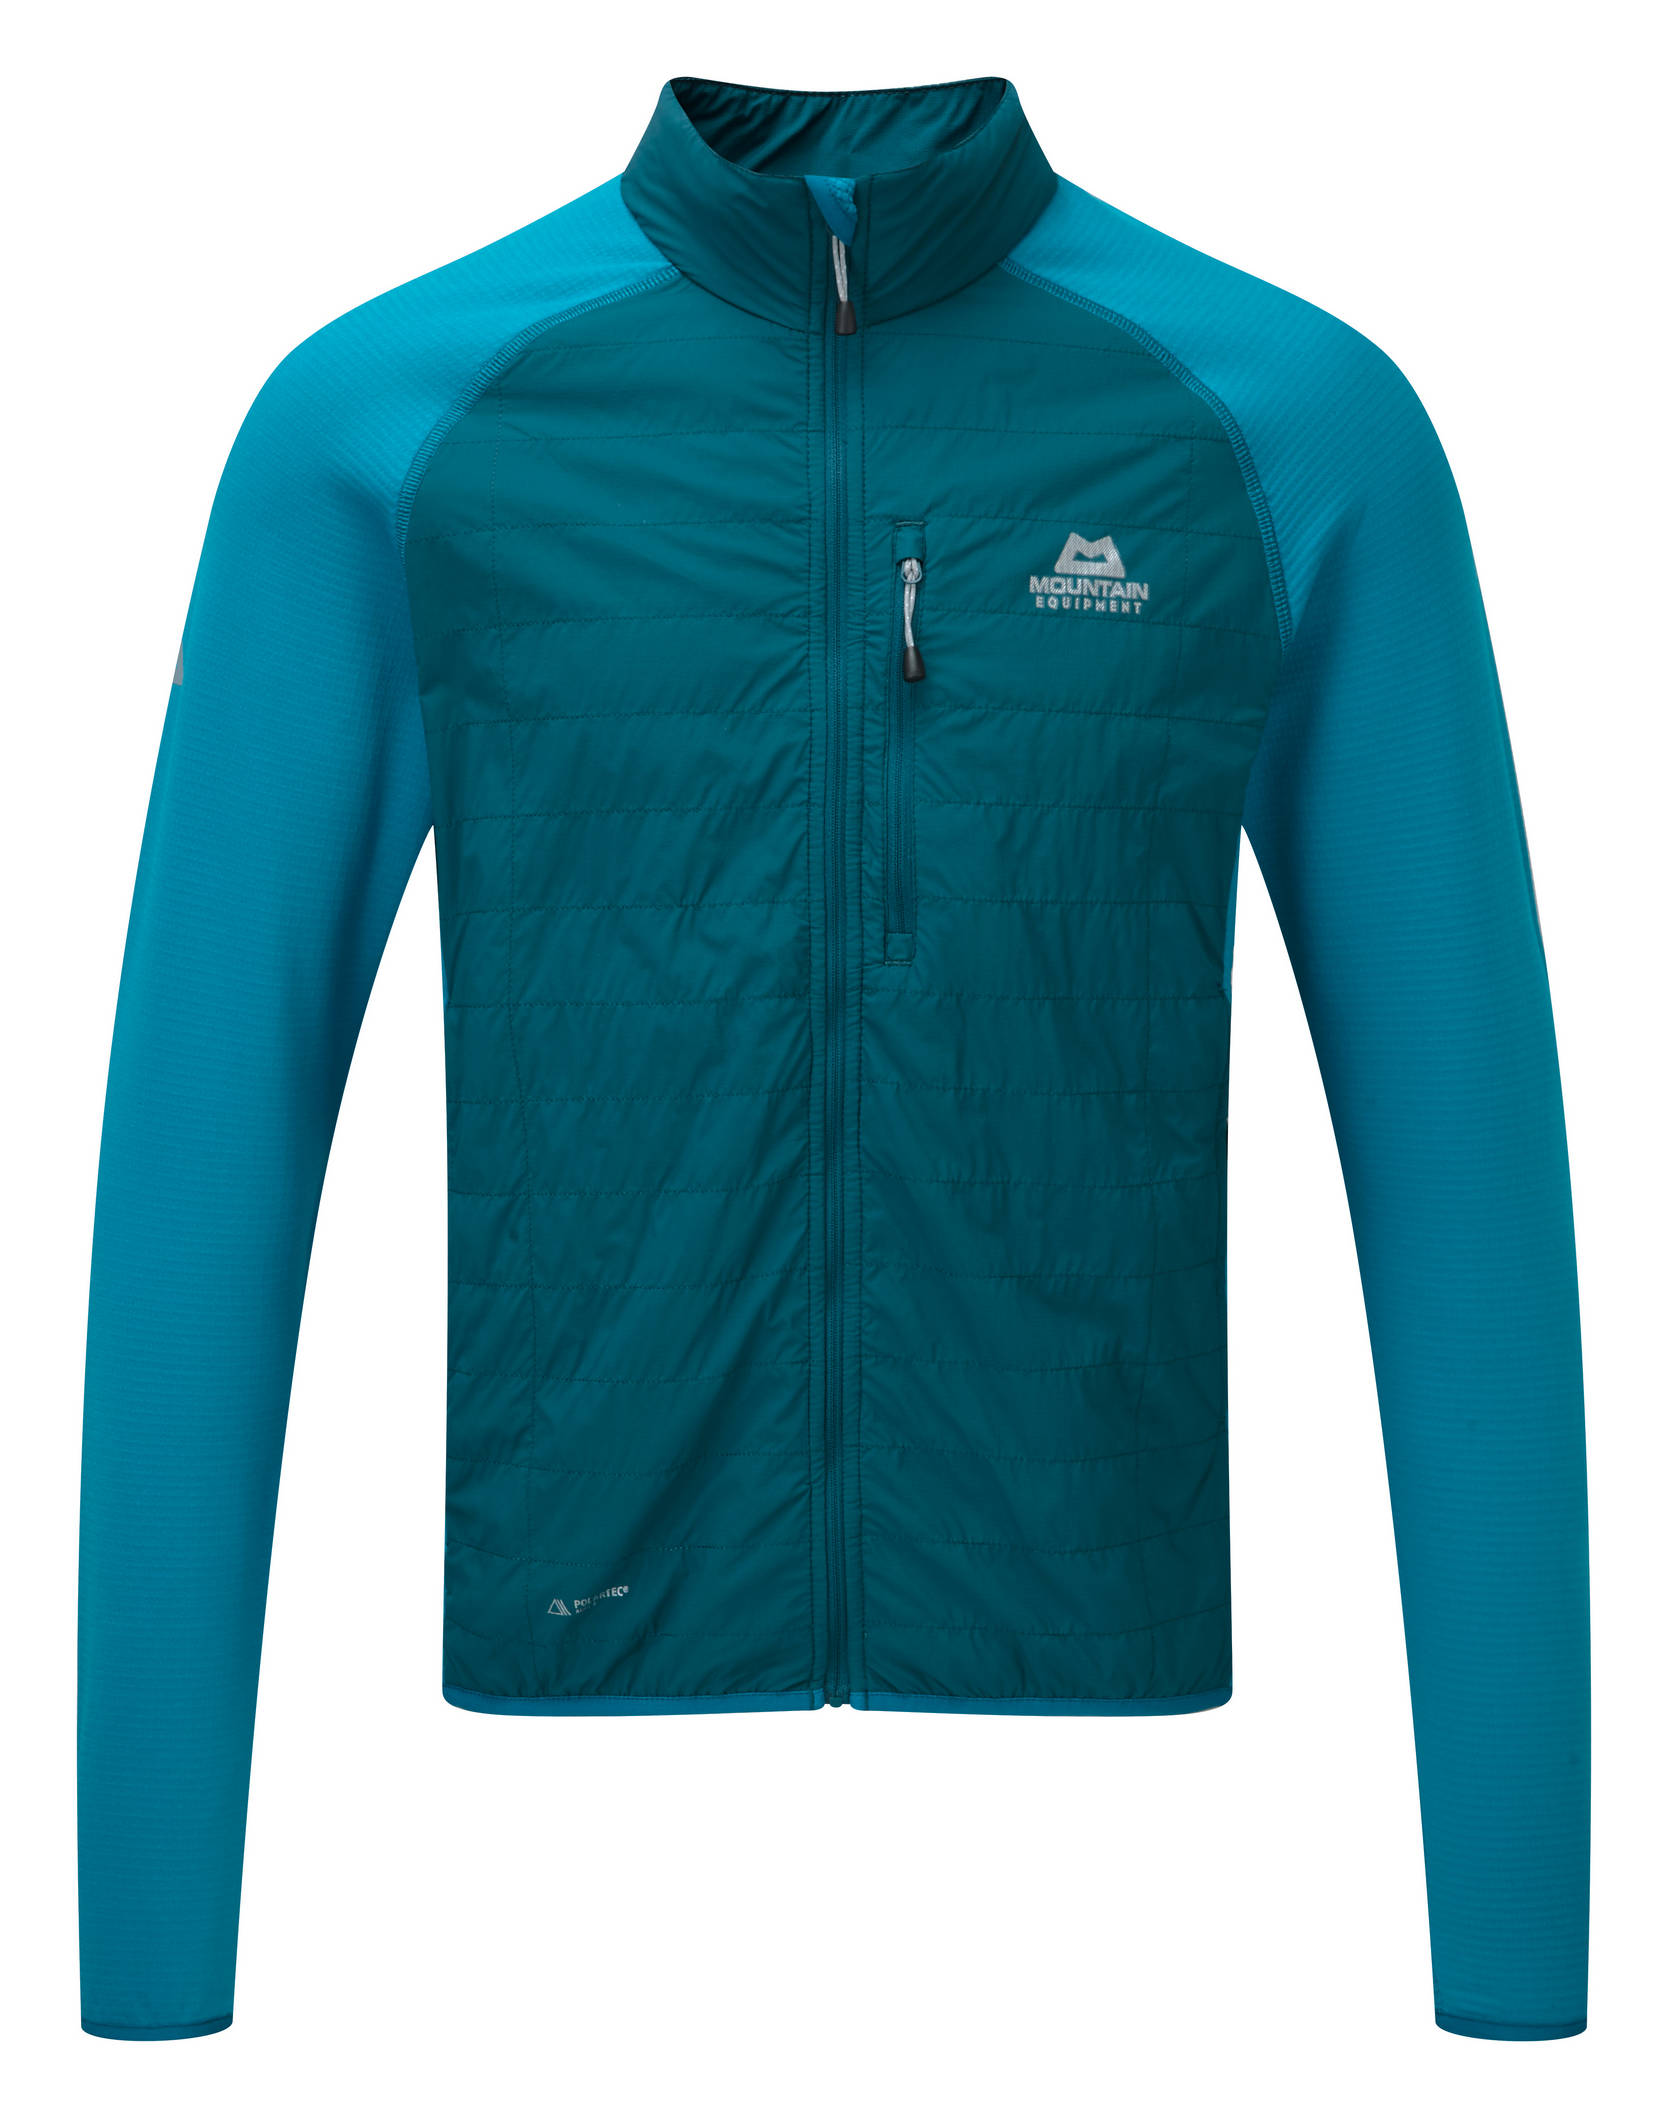 441befaa03b2a2 Mountain Equipment Switch Jackets - Mens, Jacket Style: Midweight  Synthetic, Insulation: Polartec Alpha w/ Free S&H — 14 models